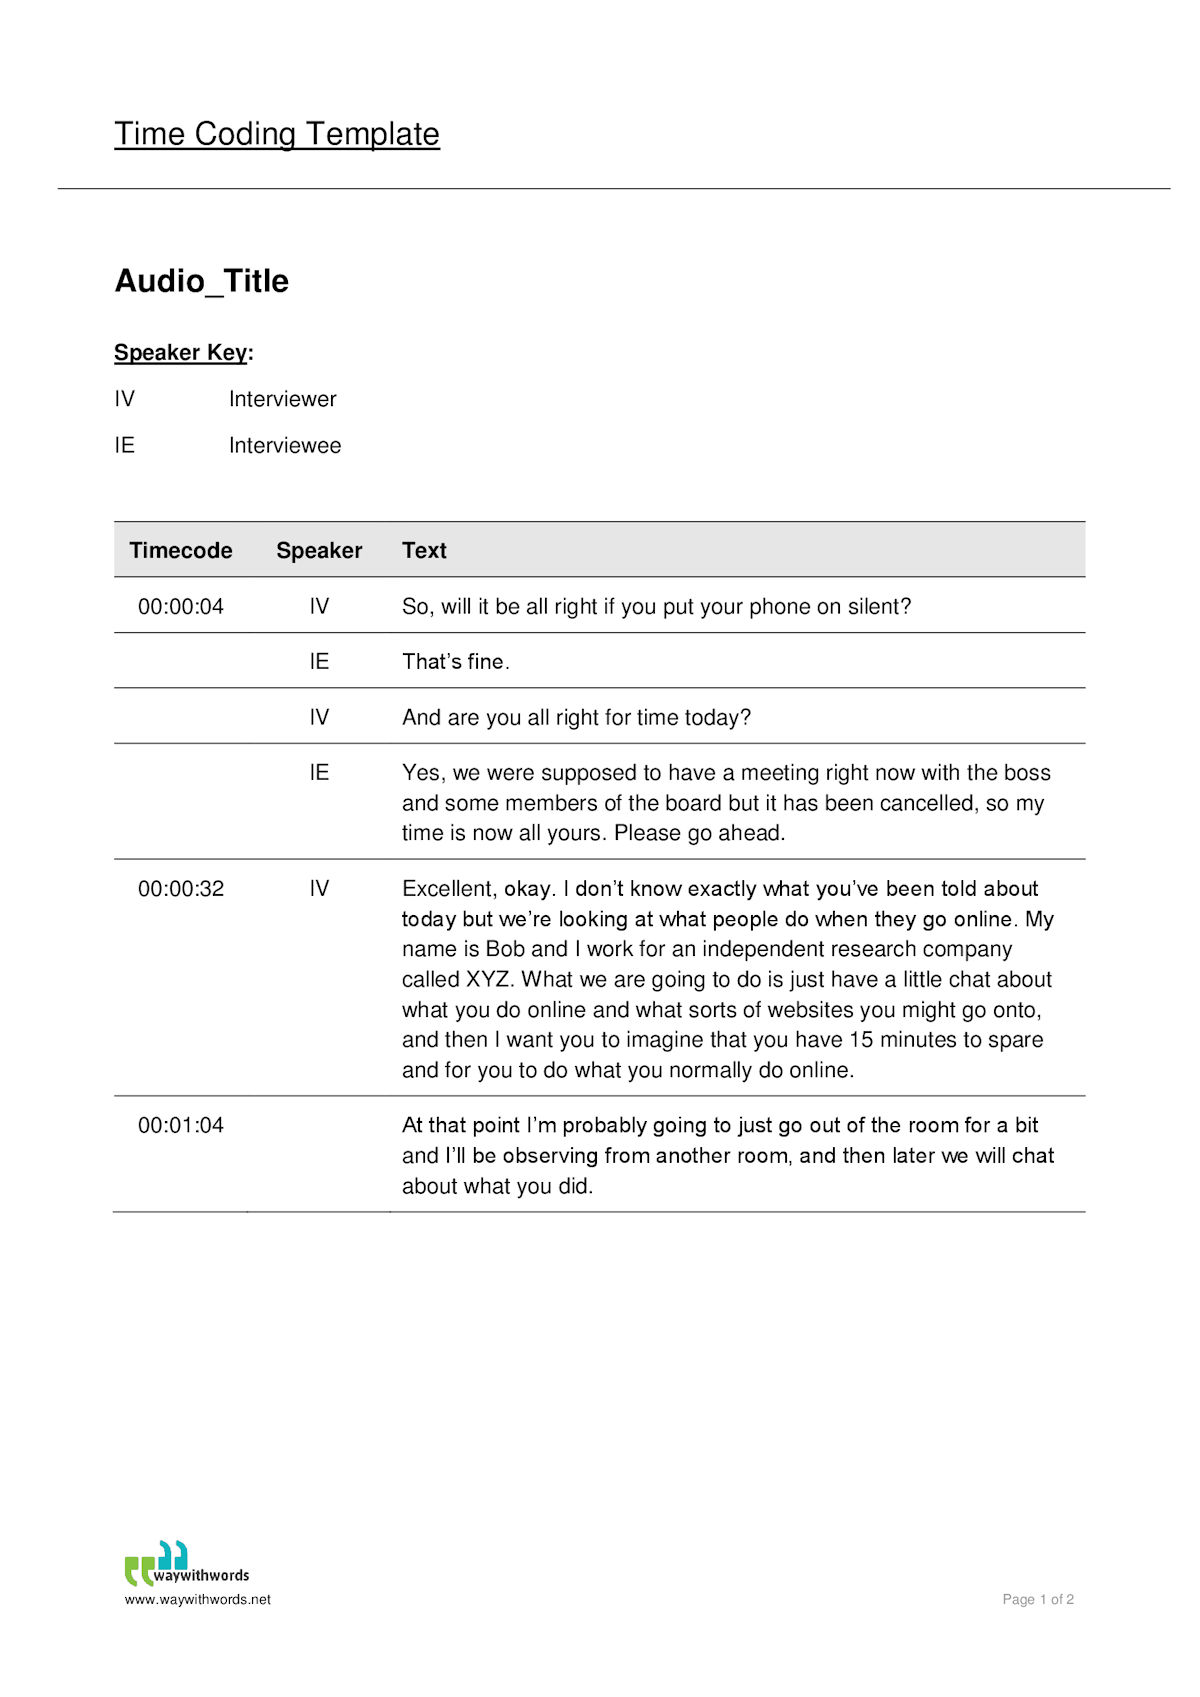 Audio Transcript Time Coded Template 1200 - Way With Words